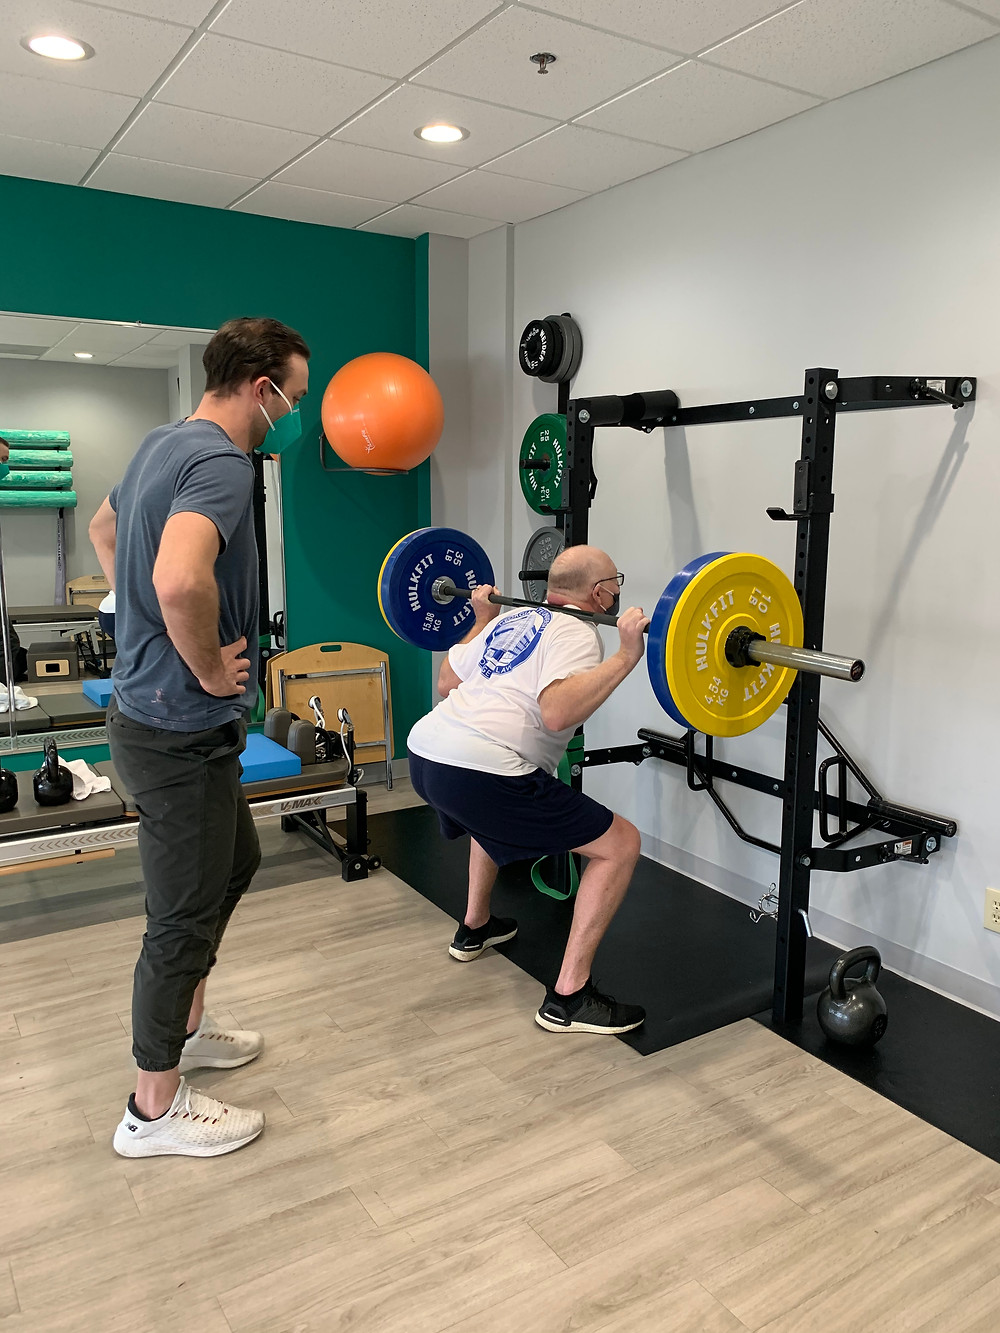 Strength Training at a squat rack in a physical therapy clinic.